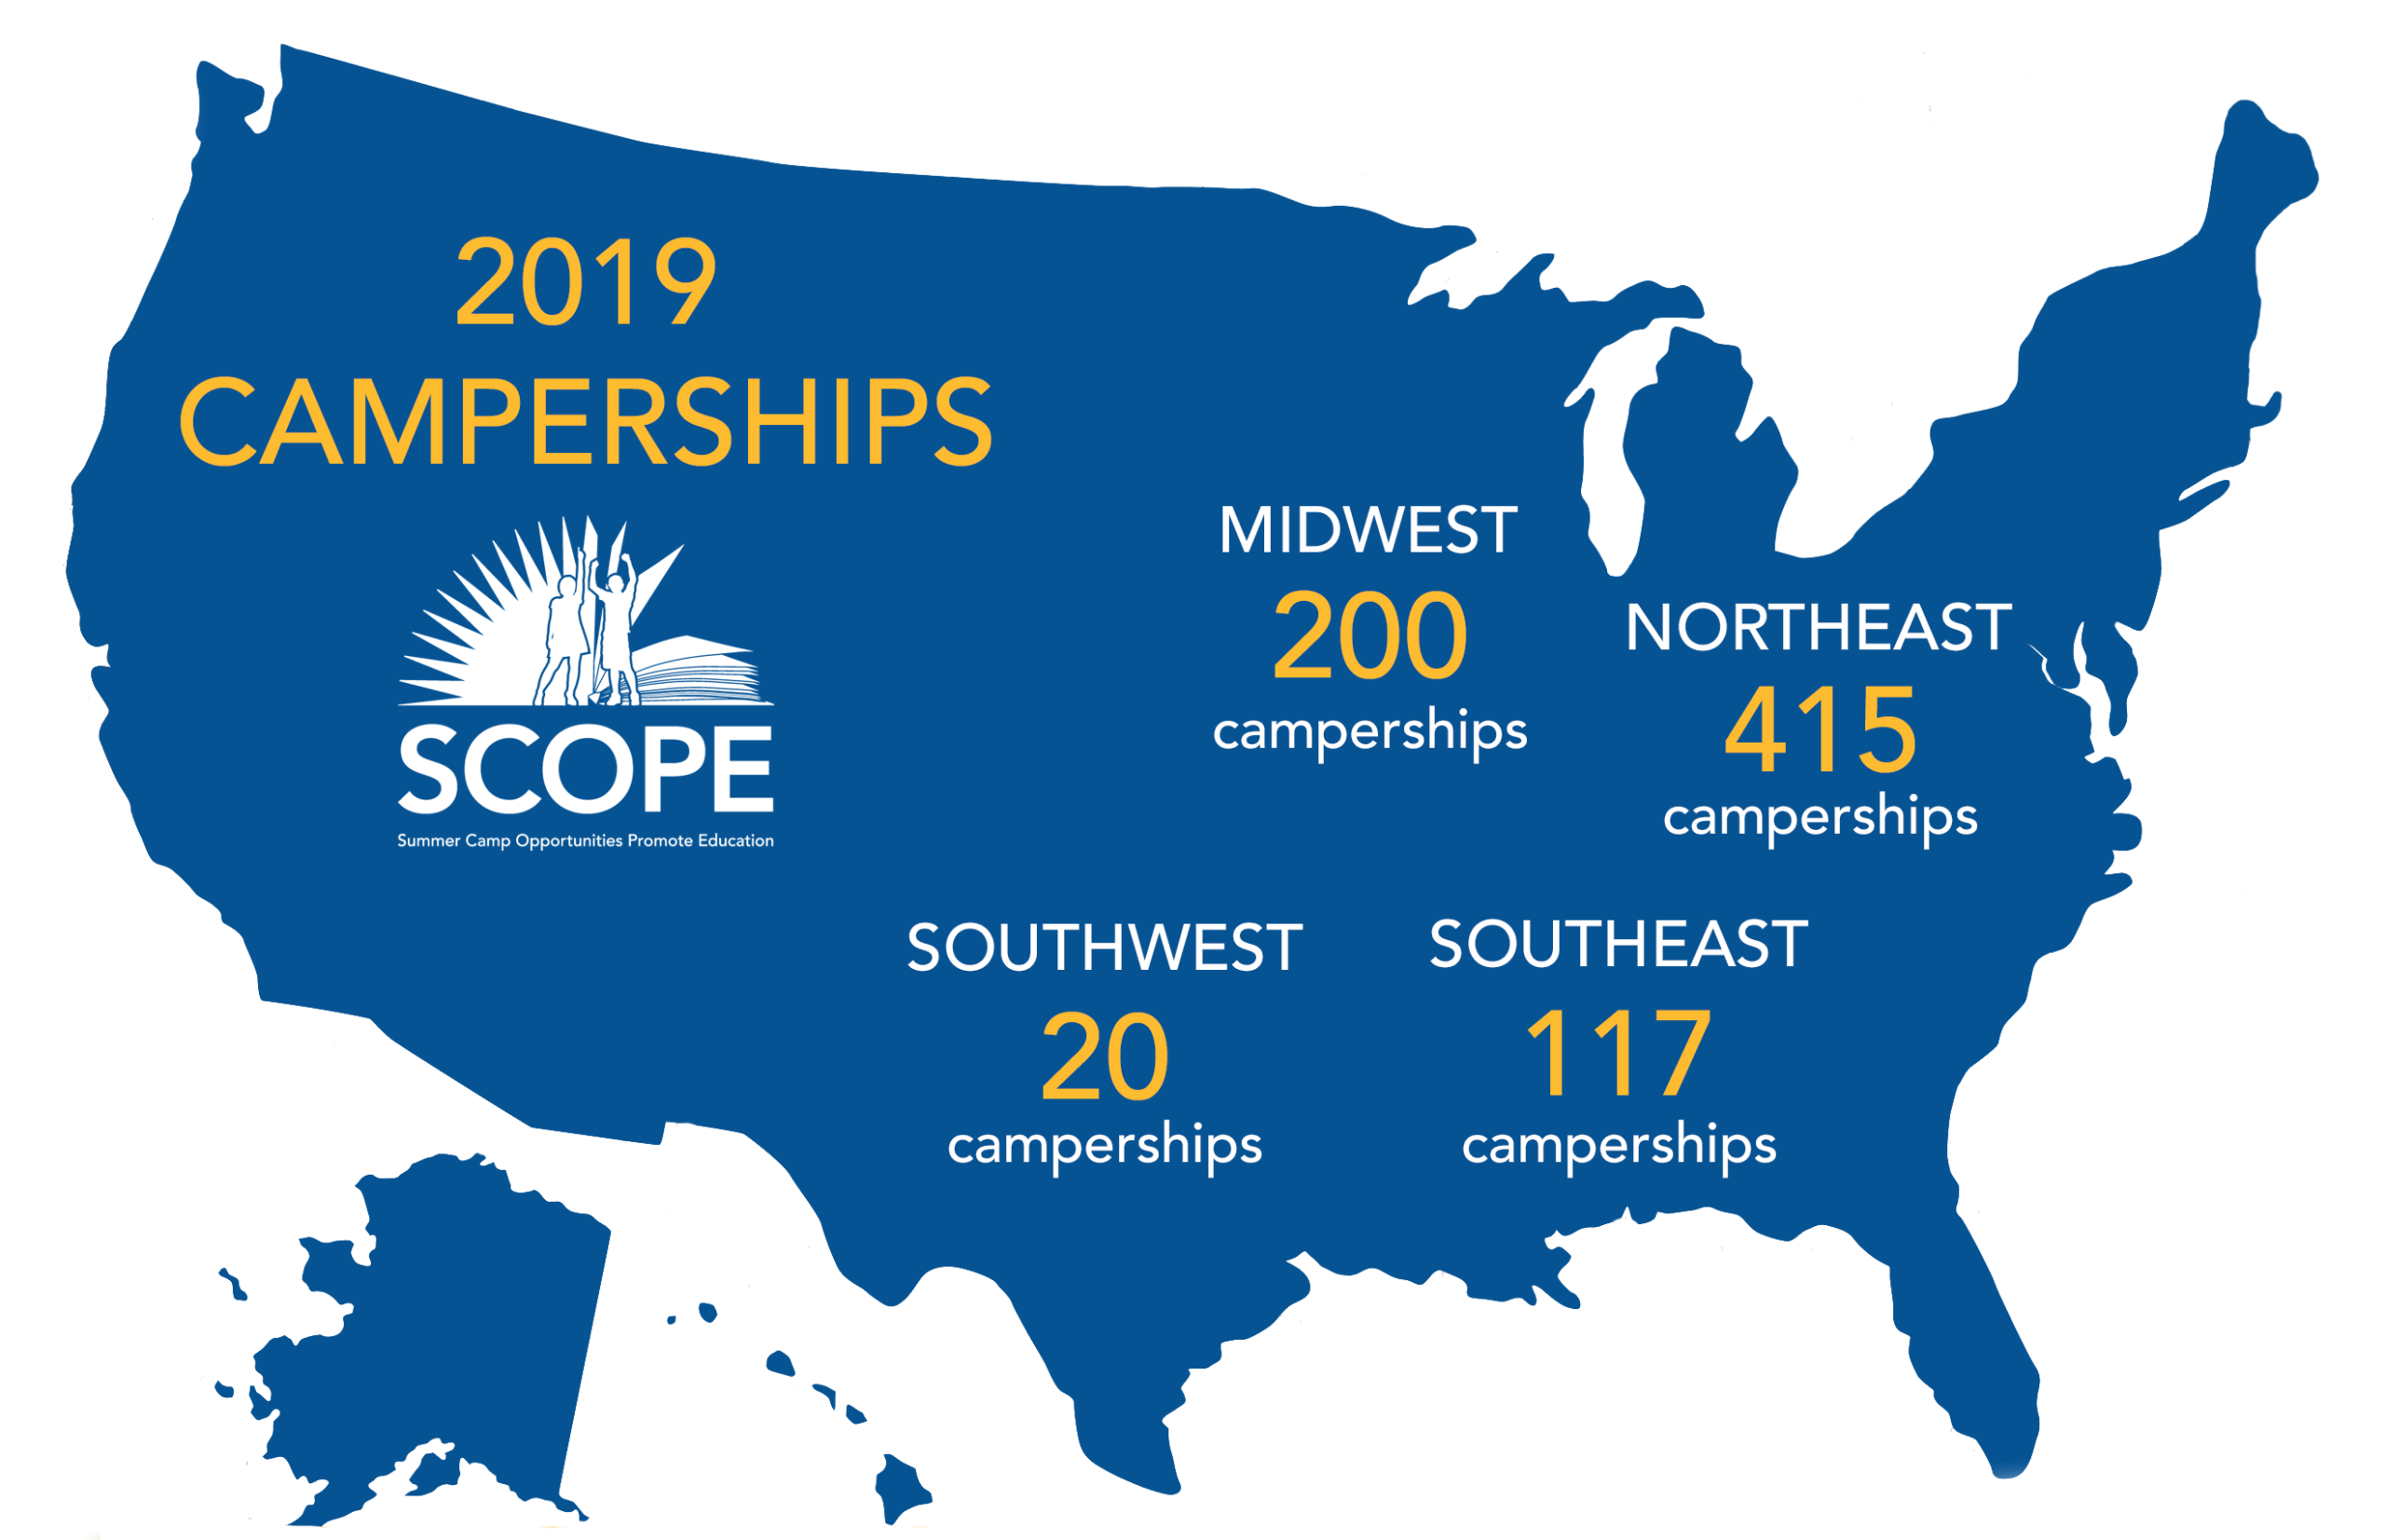 Campership USA Map 2019